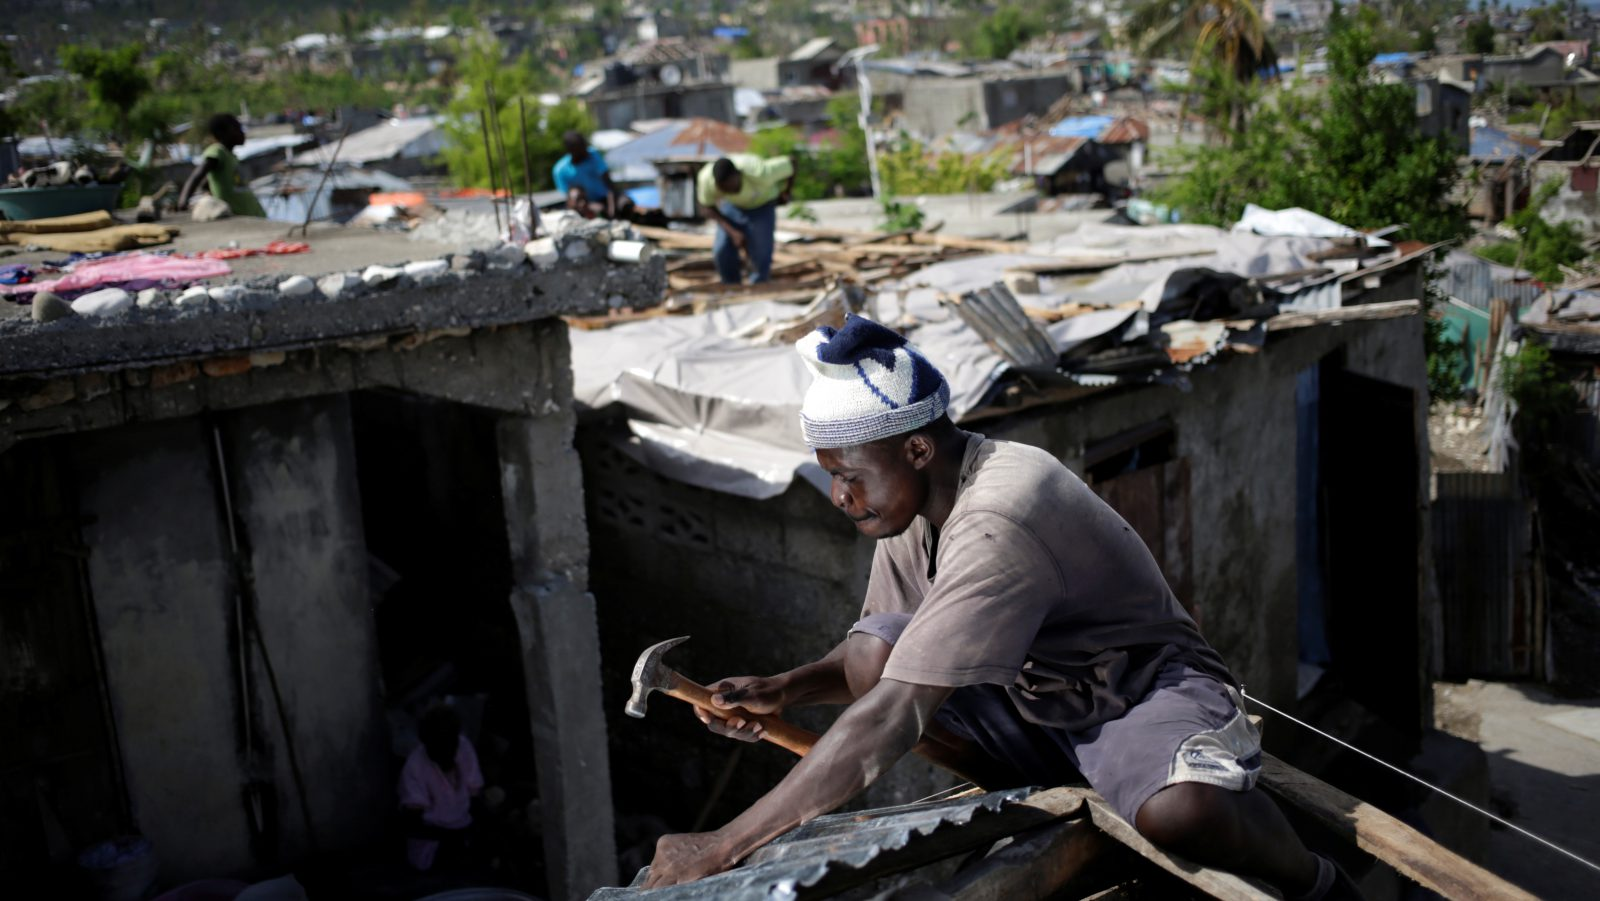 A man fixes the roof of a house affected by Hurricane Matthew in Jeremie, Haiti, October 31, 2016. REUTERS/Andres Martinez Casares - RTX2RA88